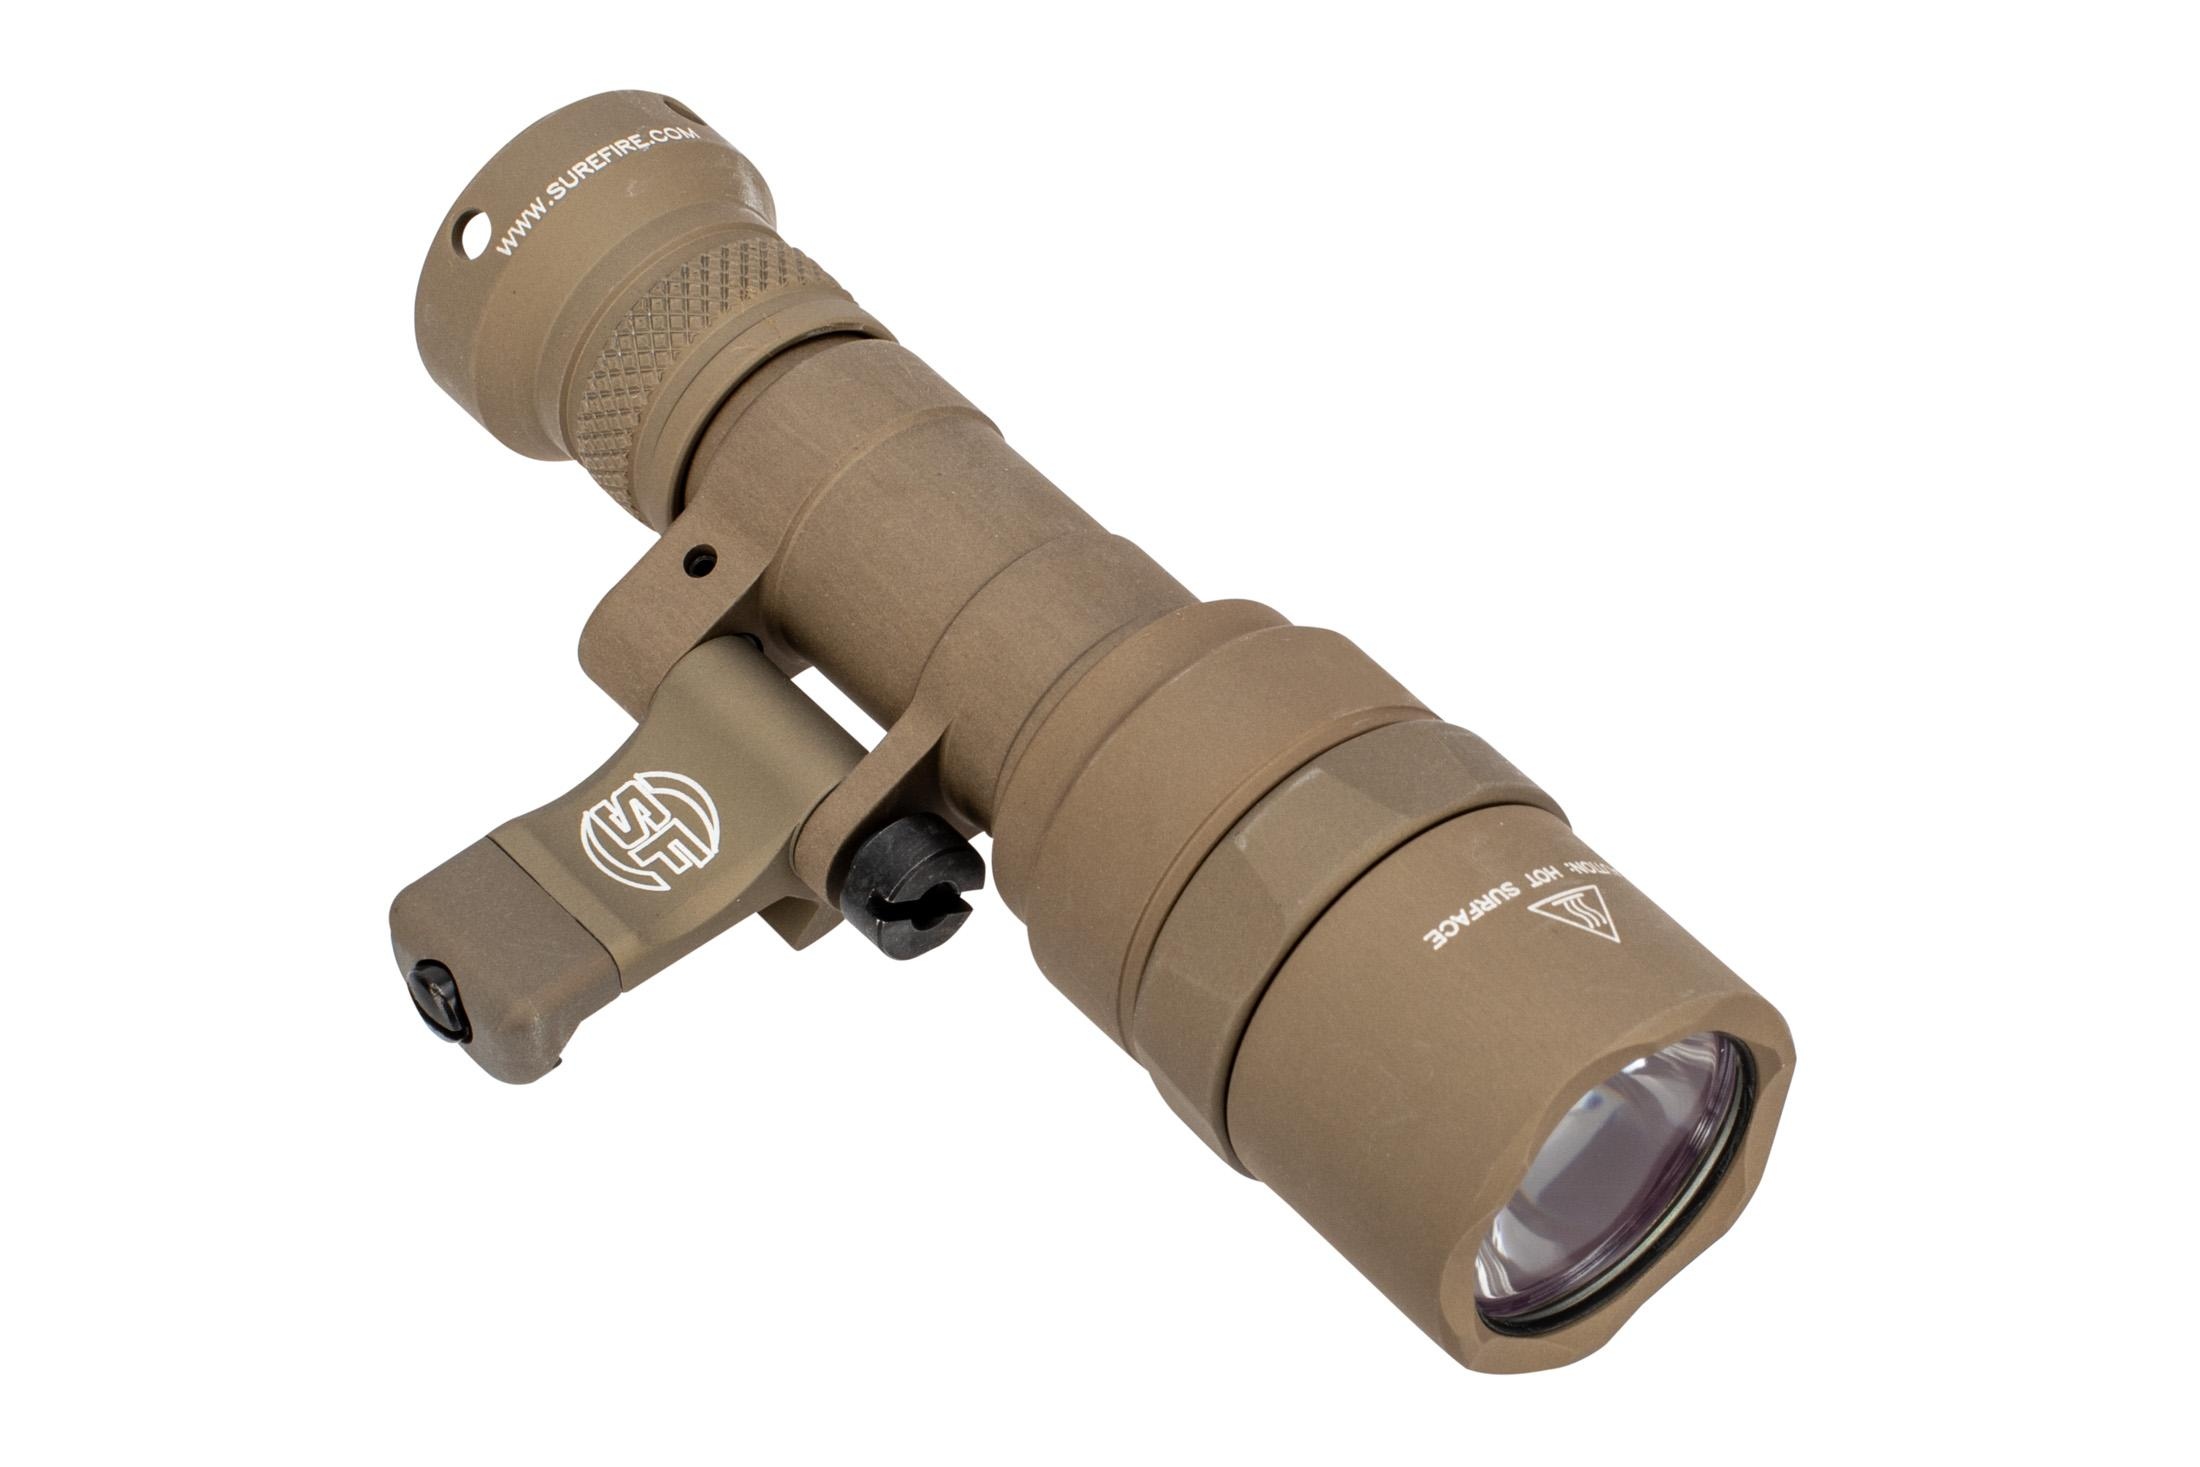 SureFire M340C Mini Scout Light Pro Weapon Light - 500 Lumens - Tan